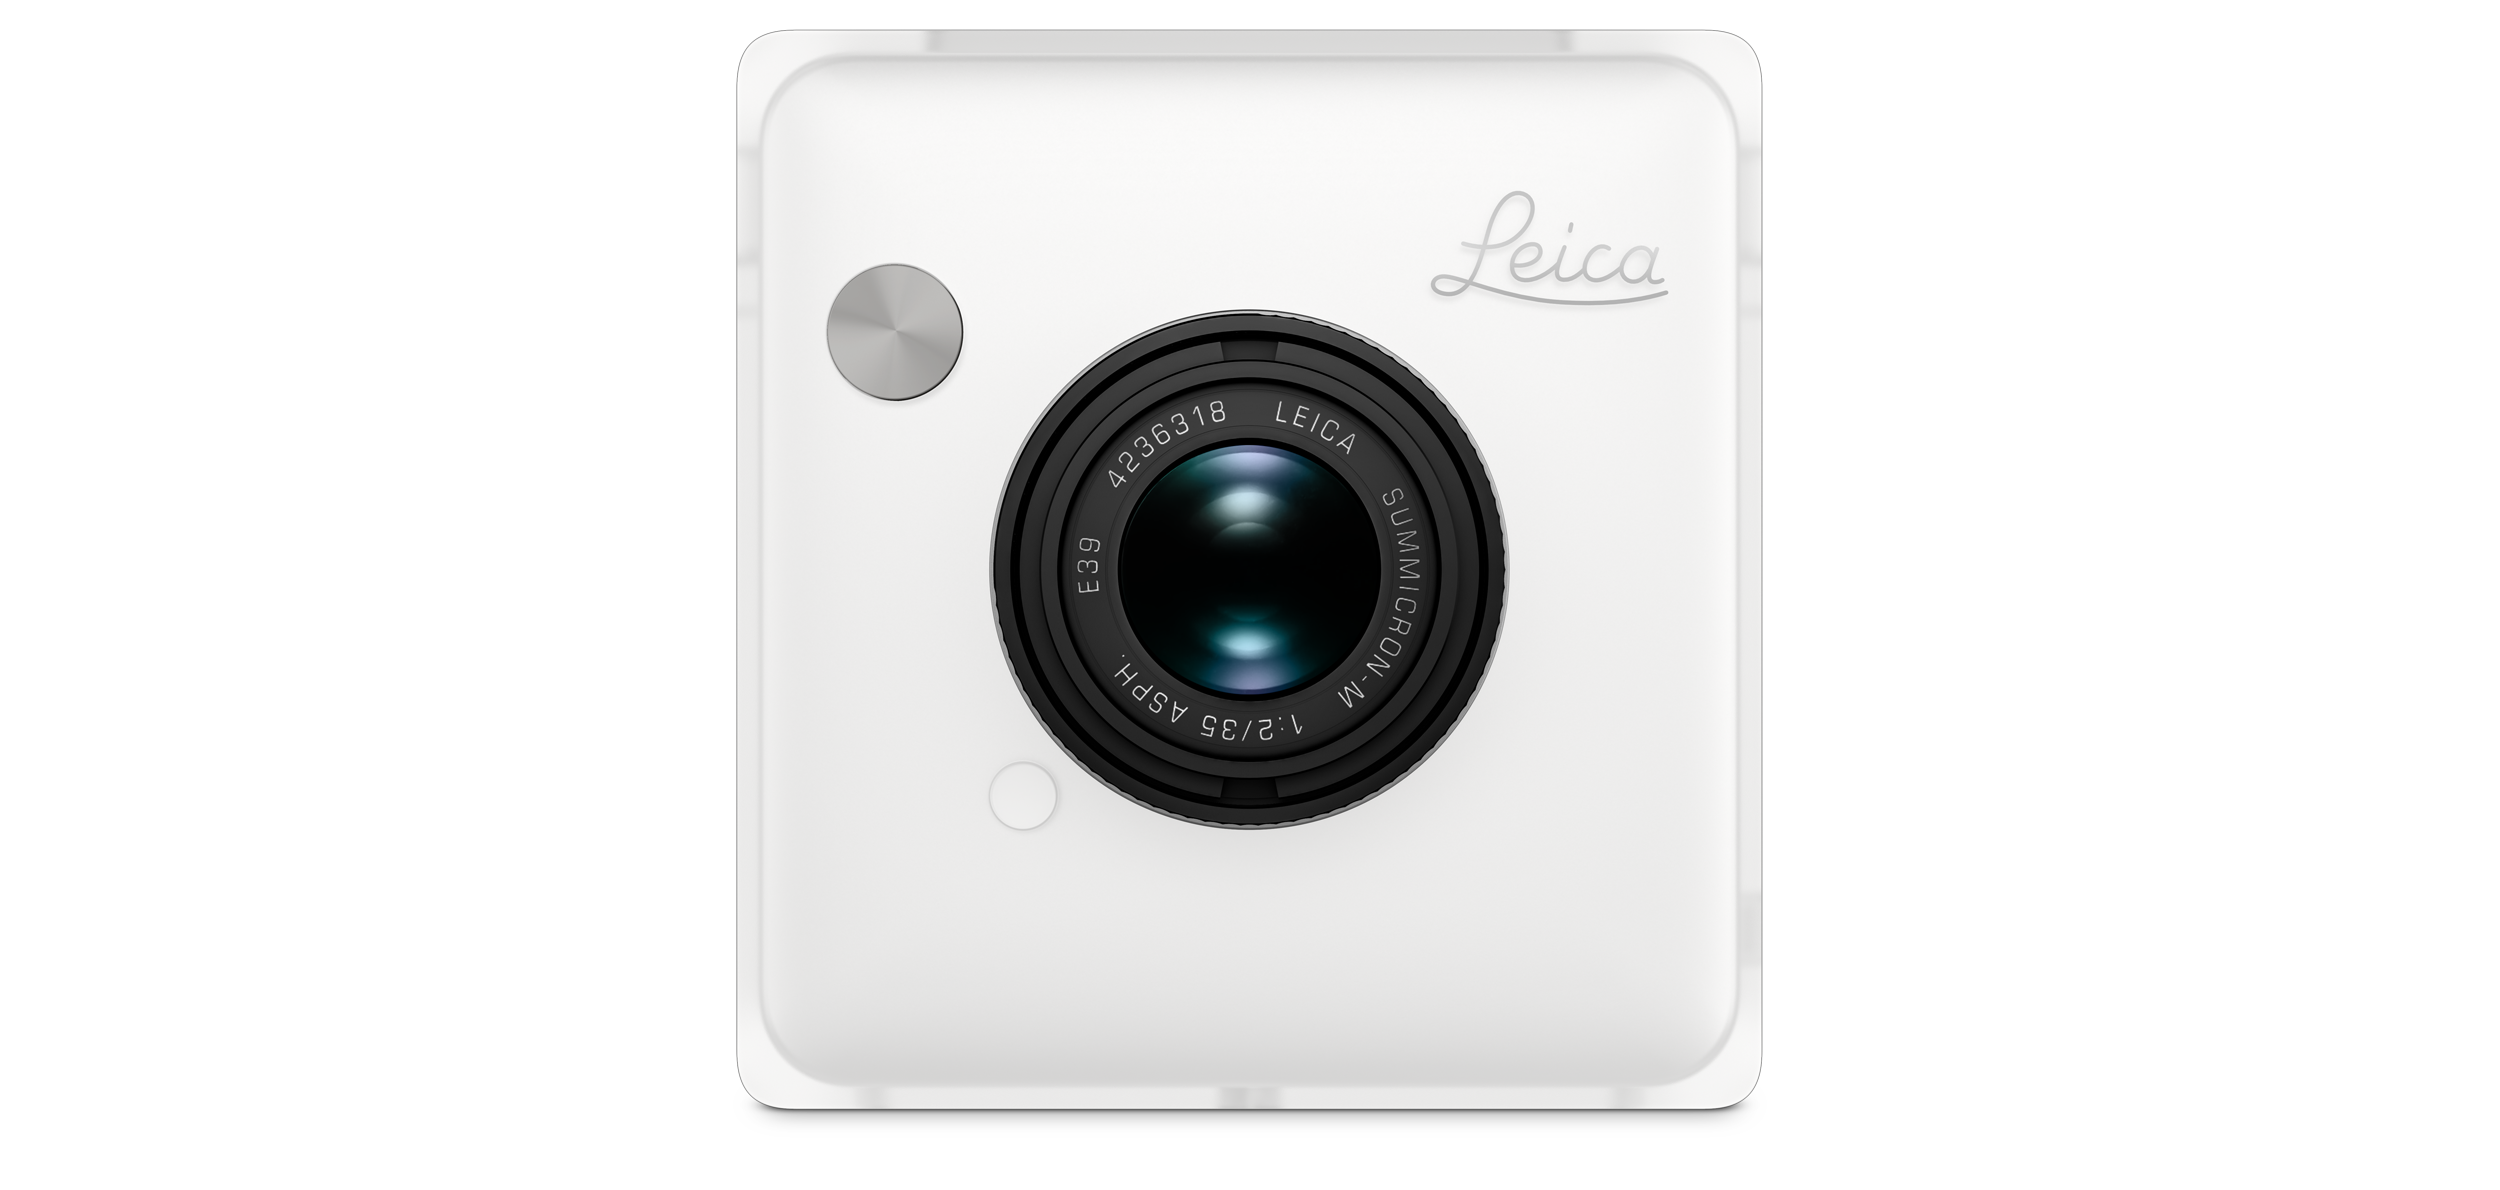 Leica Instant M Concept Describes an Instant Camera With Leica M Lens